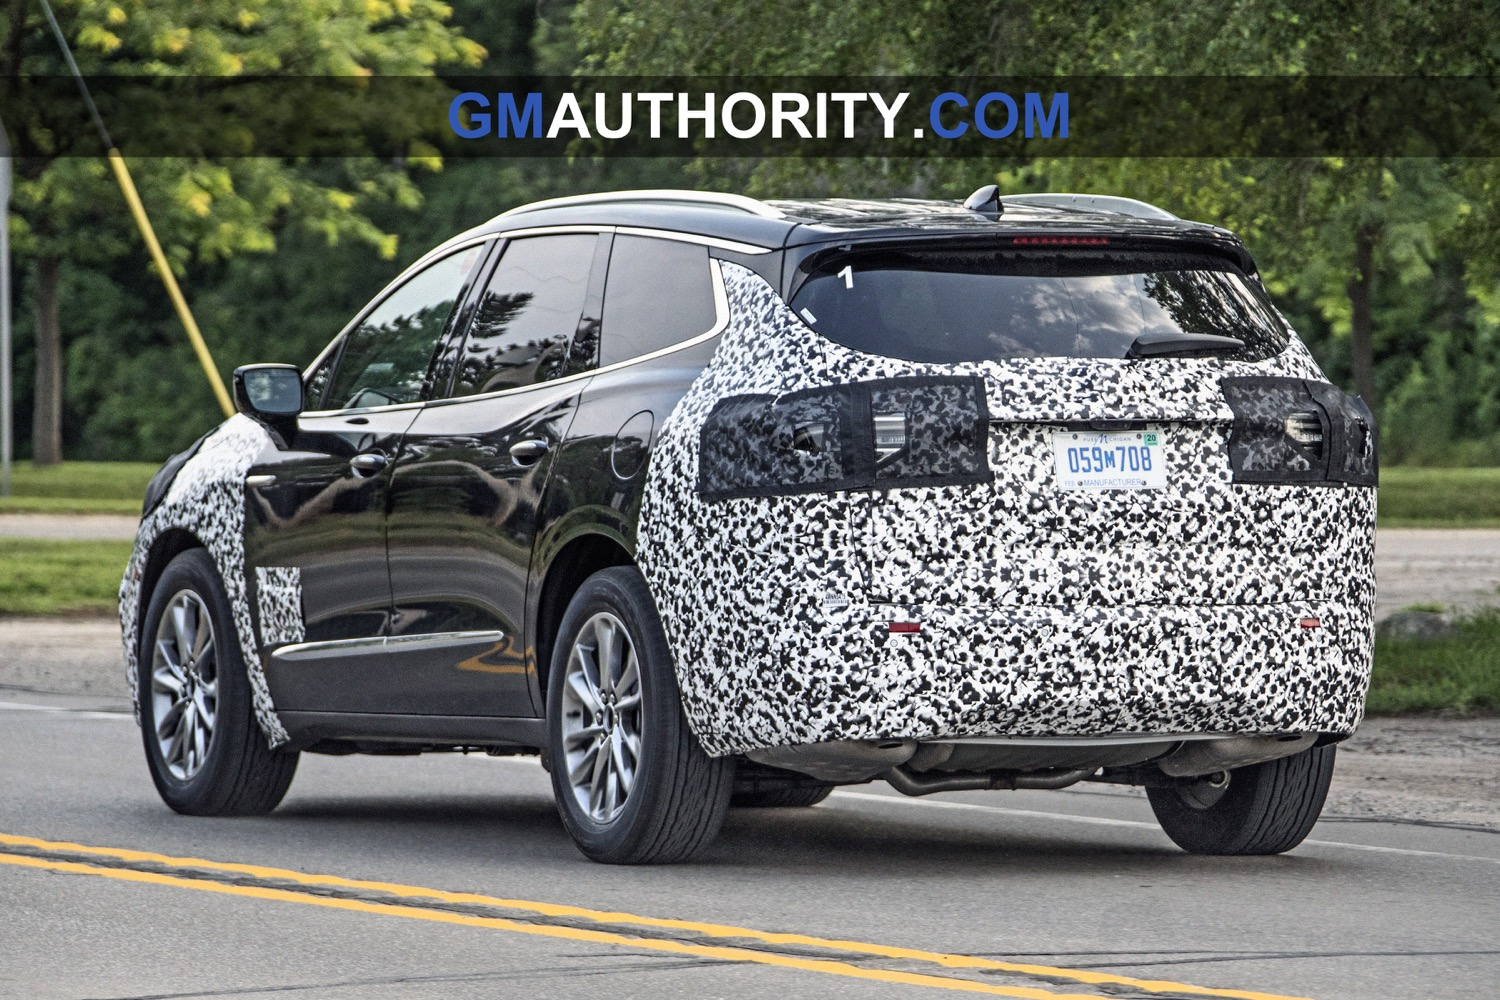 Buick Enclave Refresh Pushed Back To 2022 | Gm Authority New 2022 Buick Enclave Interior, Features, Fwd